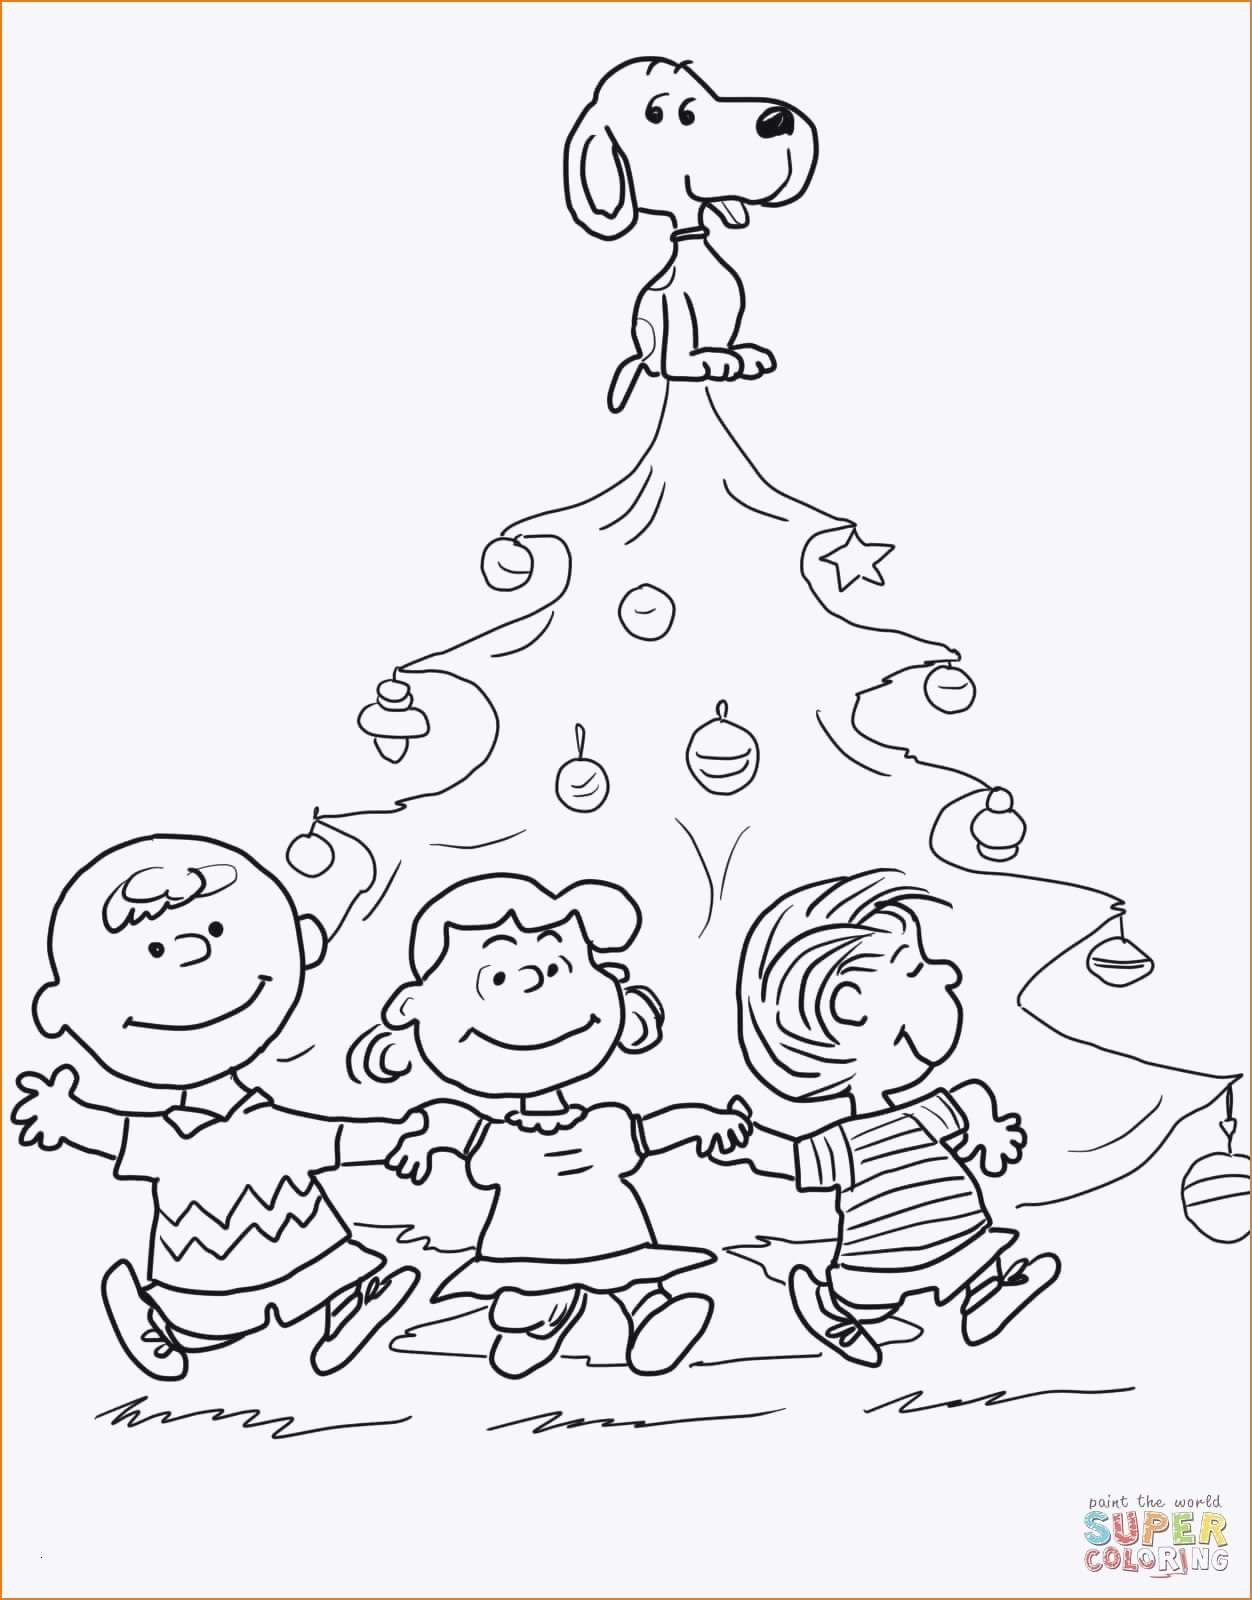 snoopy christmas coloring pages Download-Charlie Brown Christmas Coloring Pages Snoopy Christmas Coloring Neu Ausmalbilder Snoopy 8-s